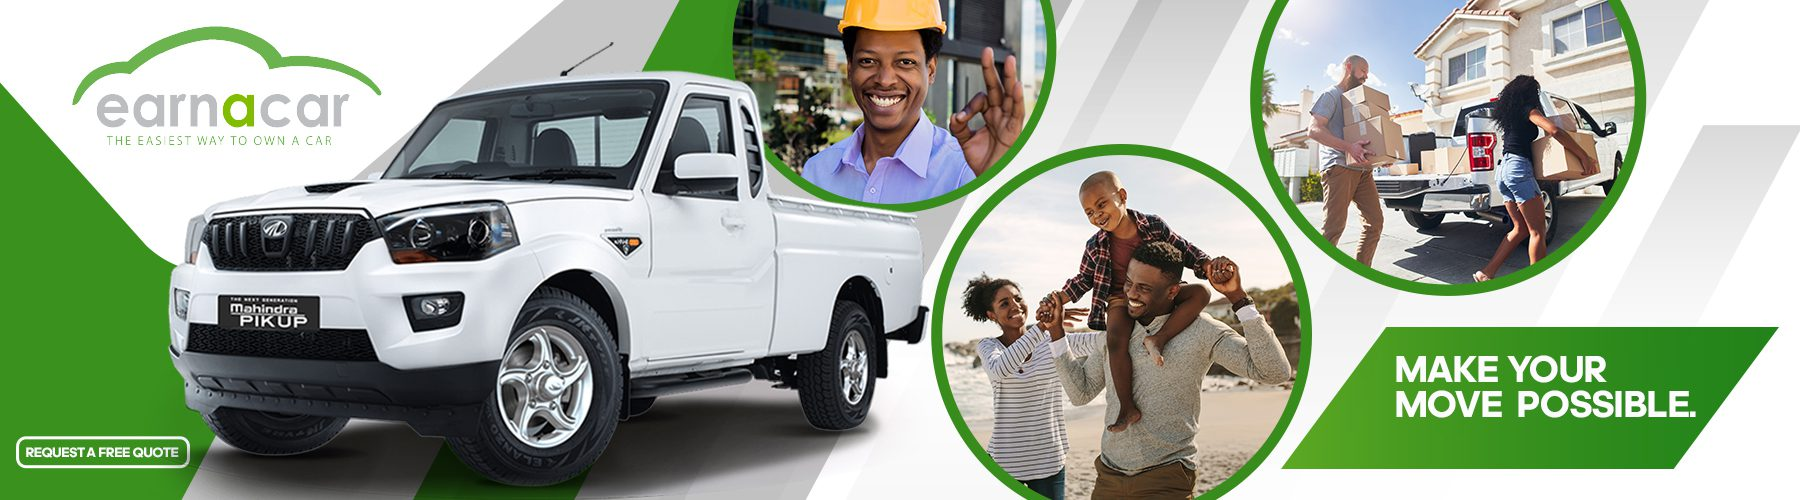 RELIABLE BAKKIE RENTAL IN JOHANNESBERG FROM ONLY R500 PER DAY!